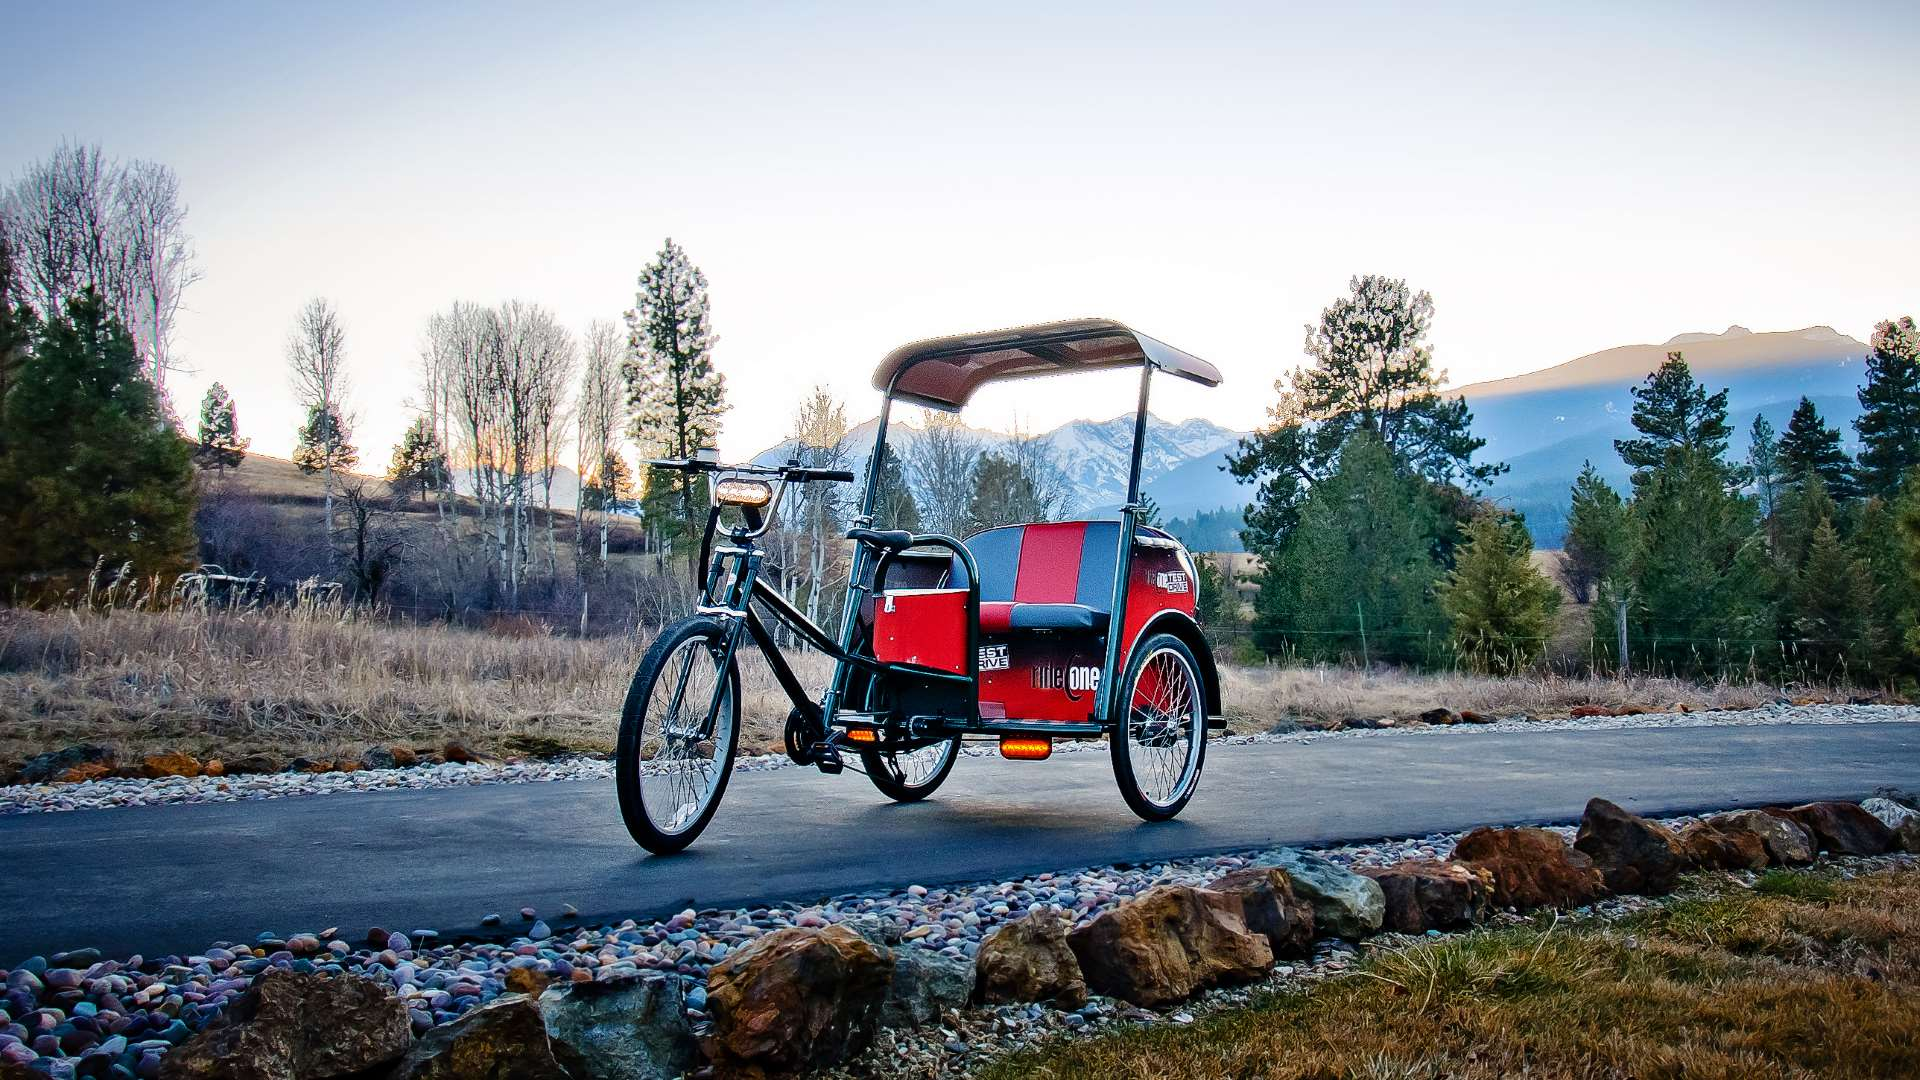 pedicabs by coaster a red and black pedicab on a road